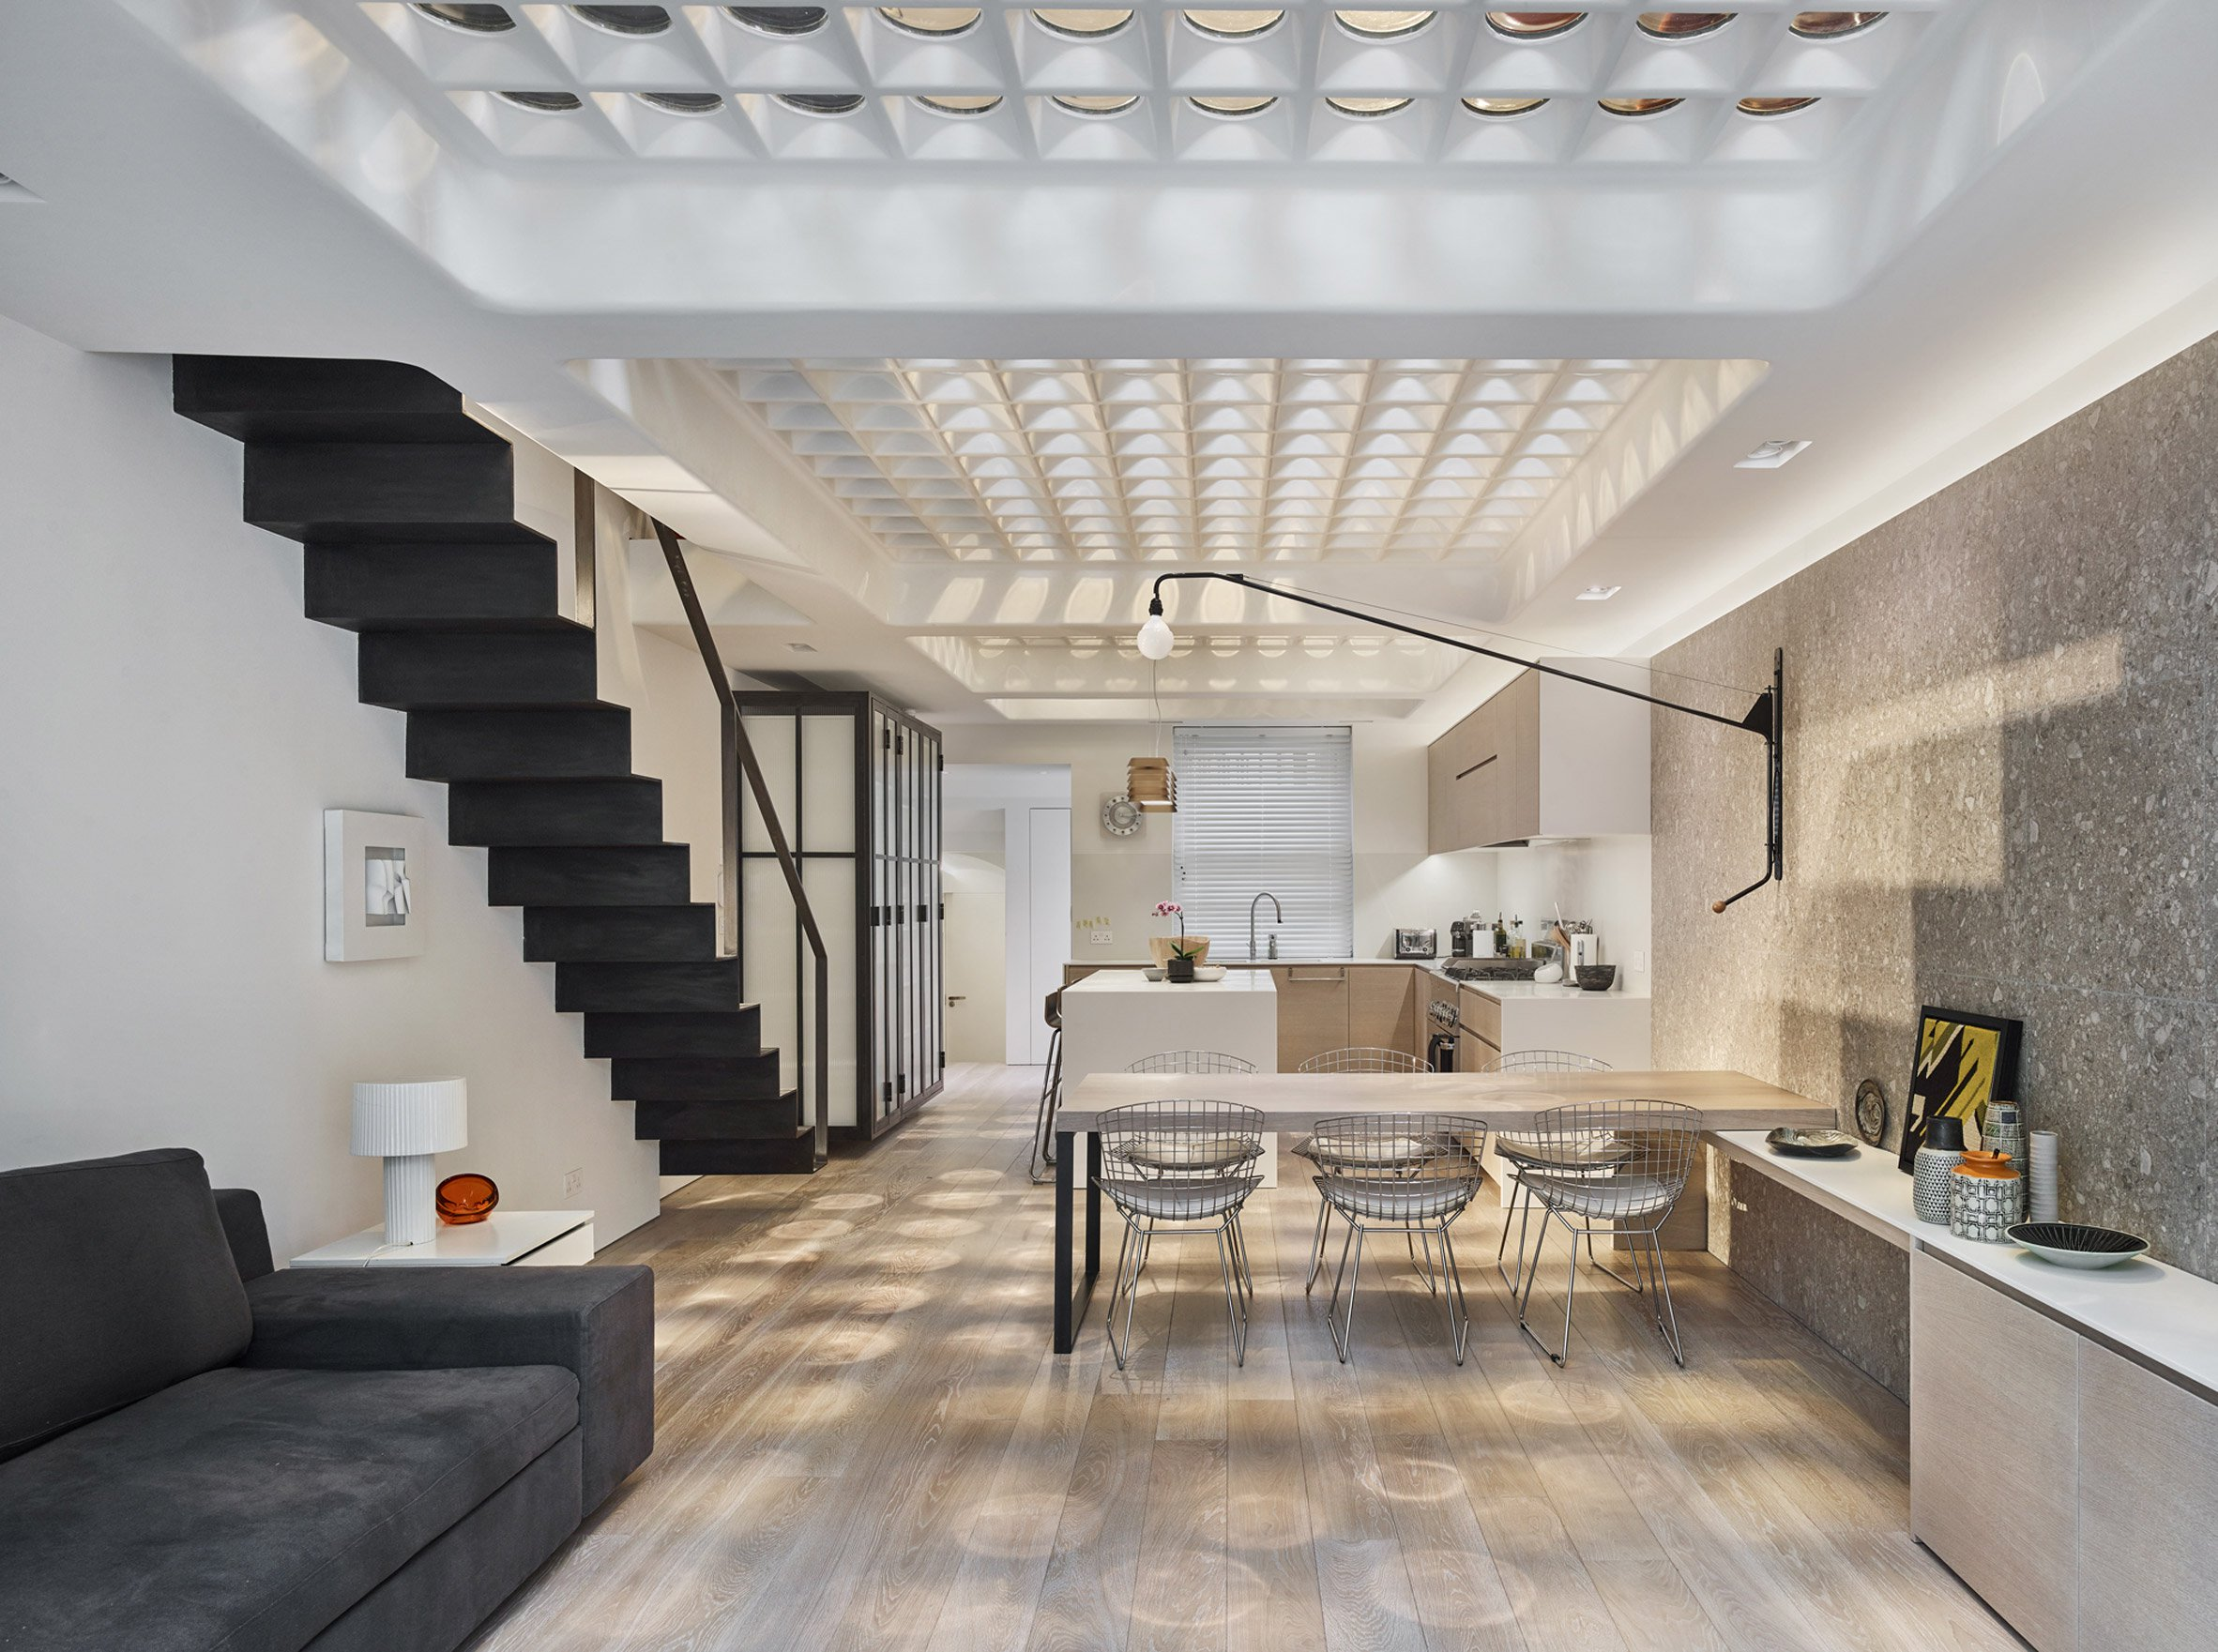 Perforated steel and pavement lights let the sun pierce London townhouse by Andy Martin Architecture